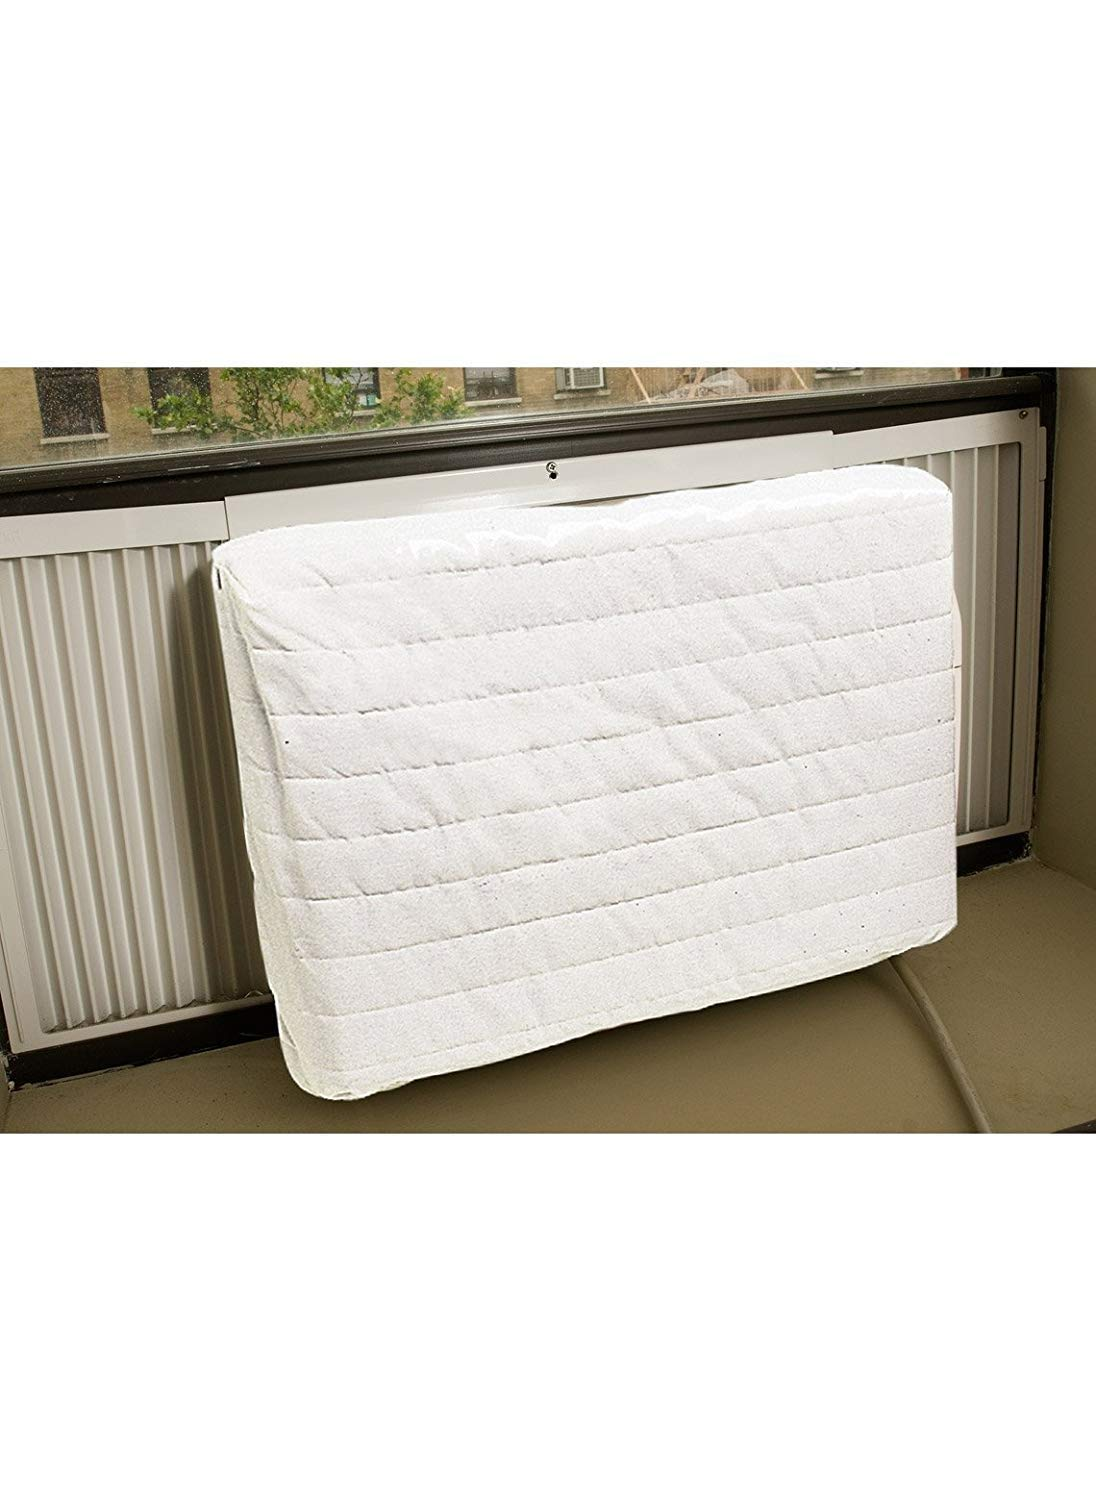 Trenton Gifts Quilted Air Conditioner Cover | Large | White MSR7767-T